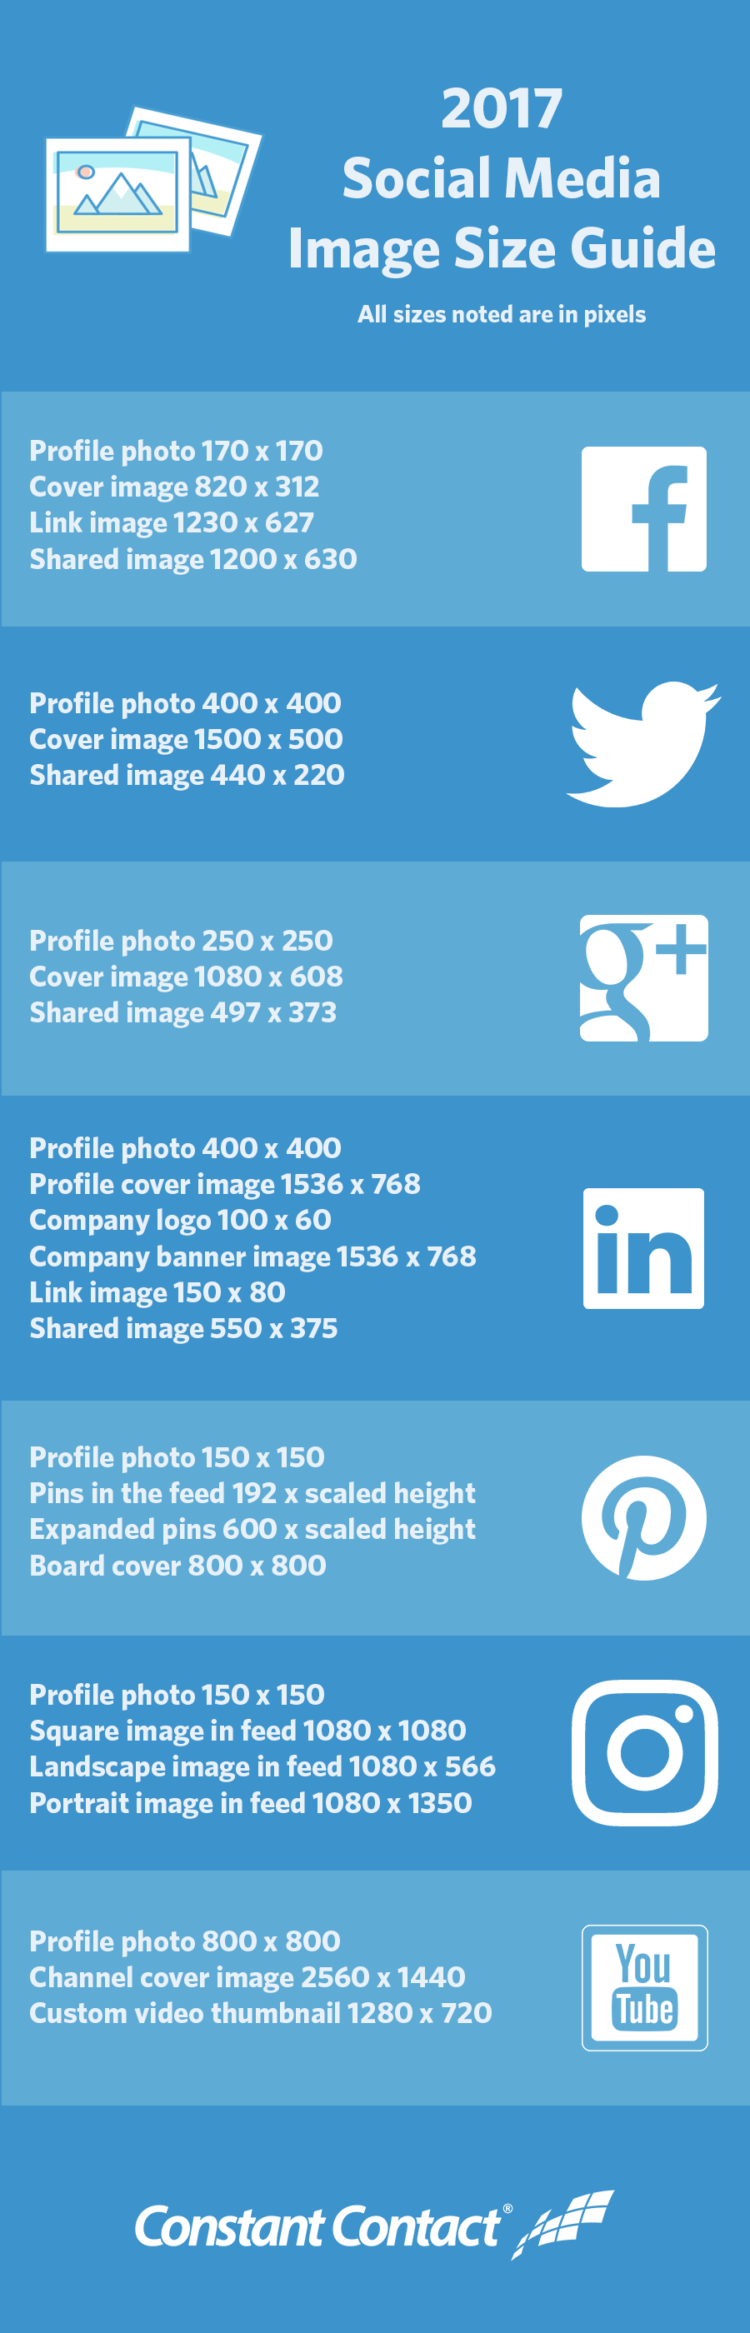 2020 Social Media Image Sizes Cheat Sheet Social media